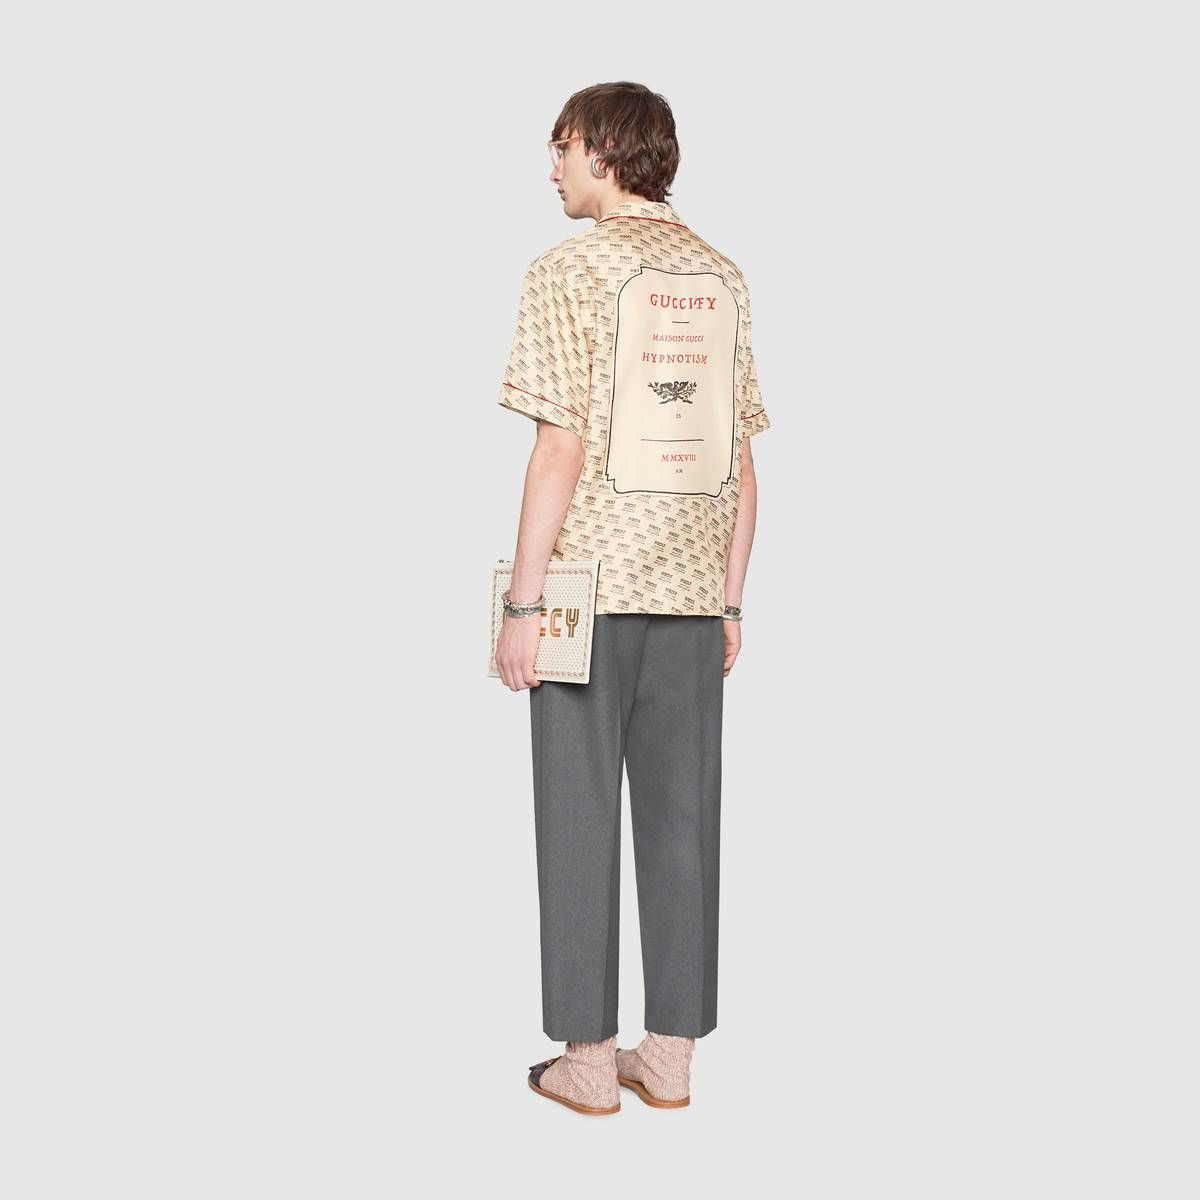 d82a0a33 Shop the Gucci stamp bowling shirt by Gucci. The Spring Summer 2018 fashion  show invite